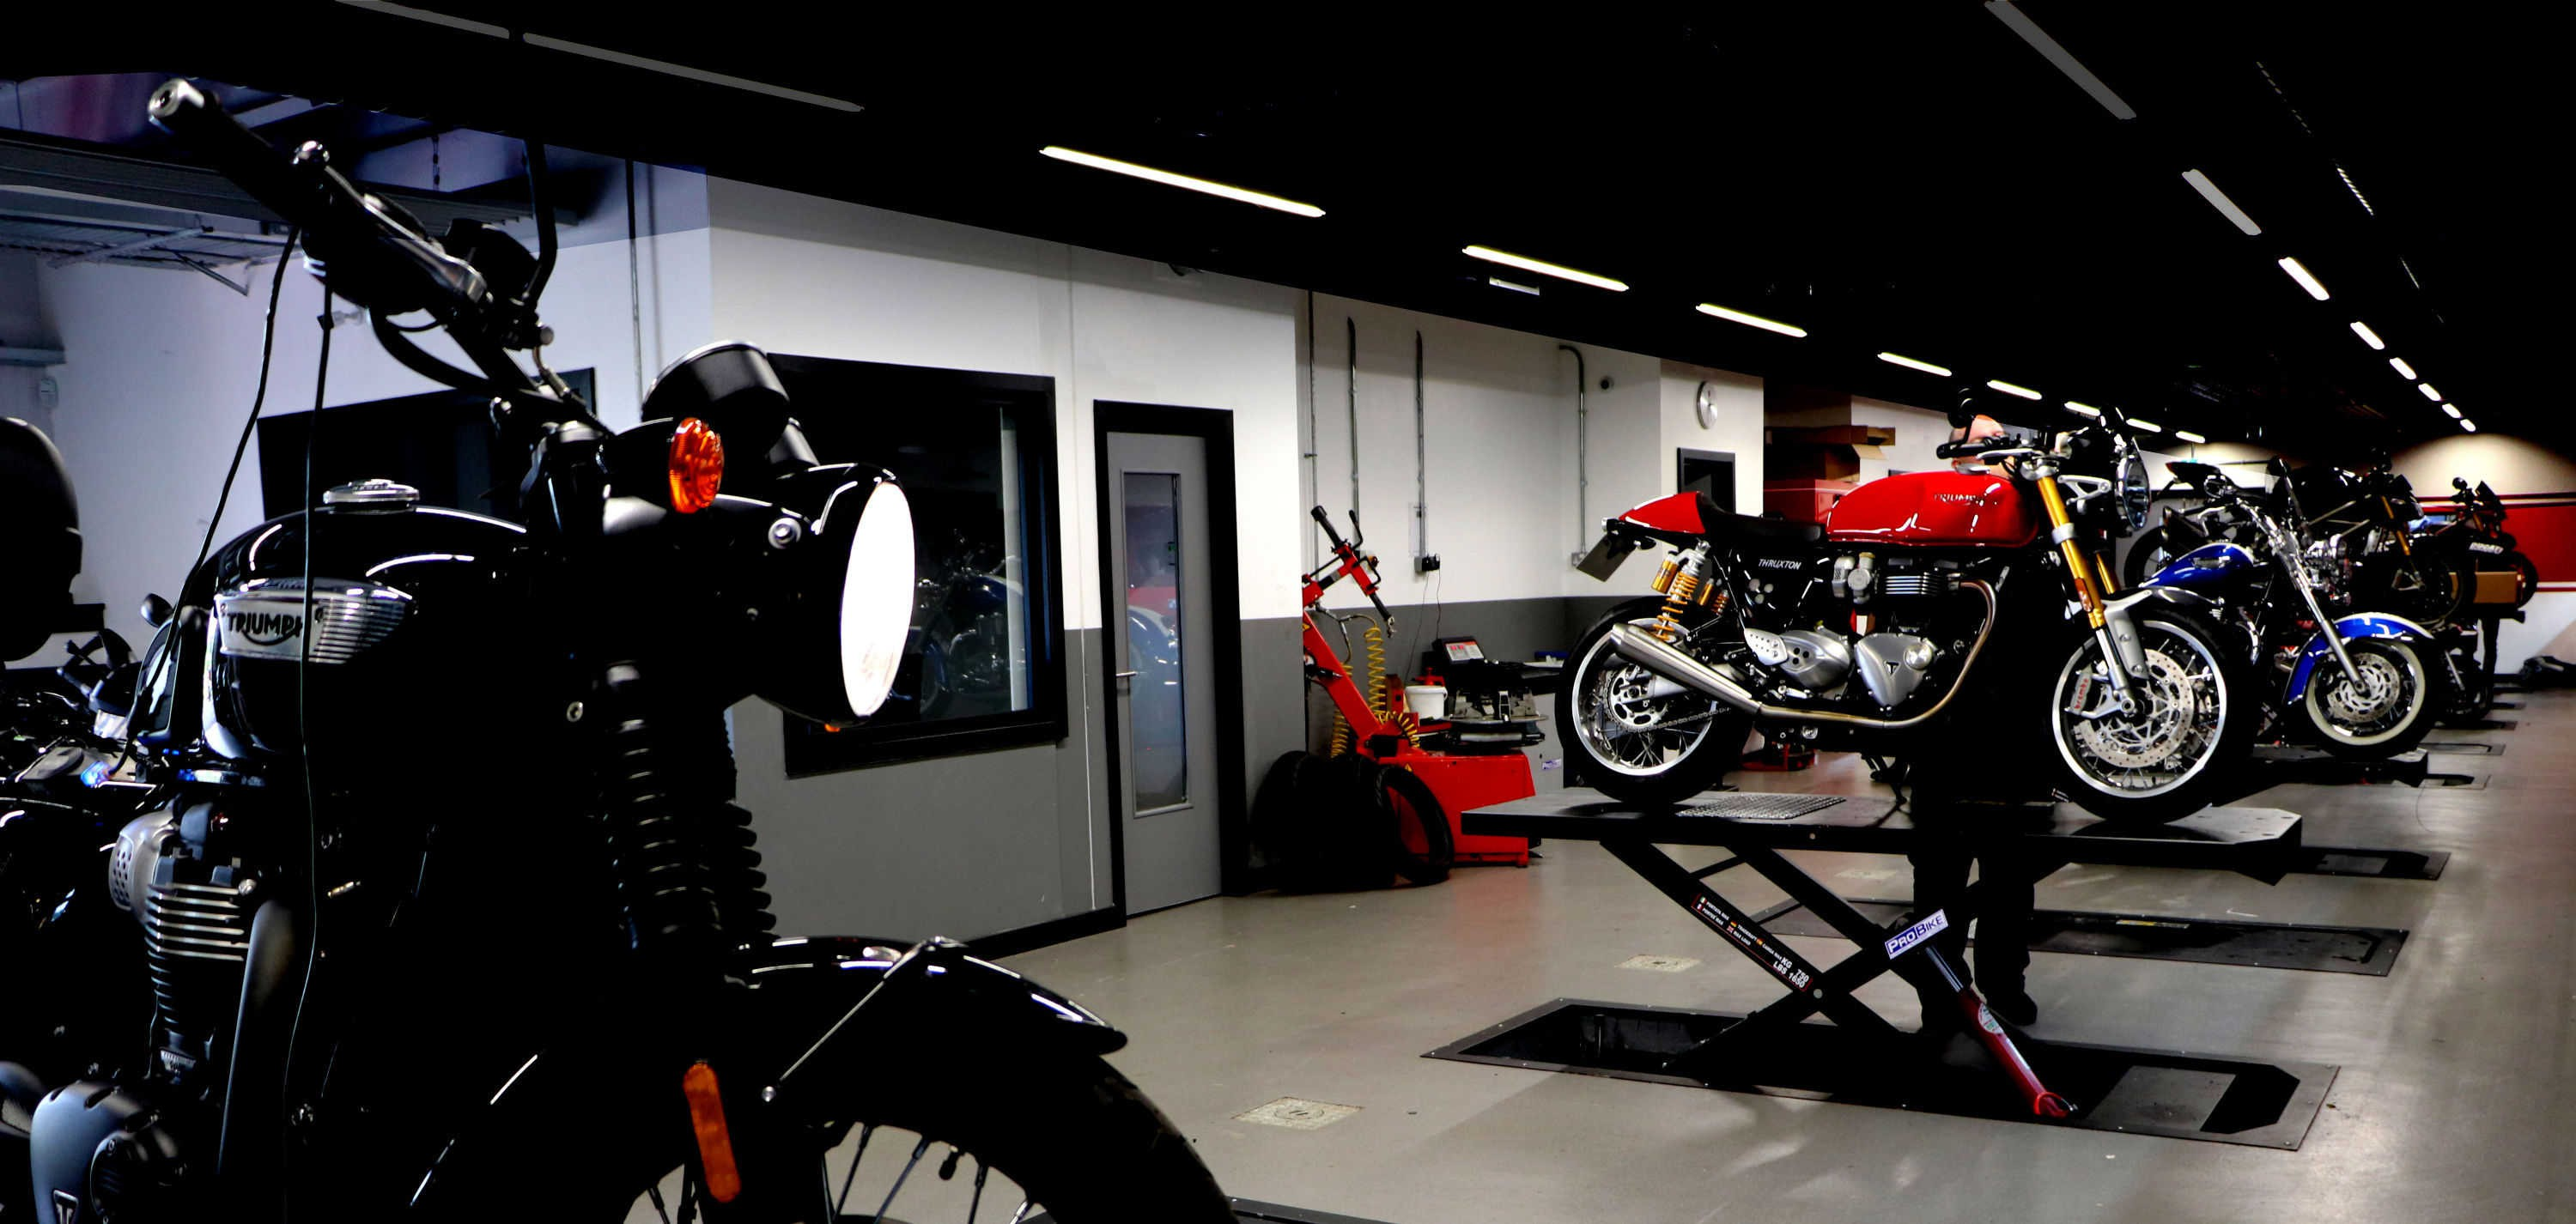 Triumph Glasgow Motorcycle Lifts